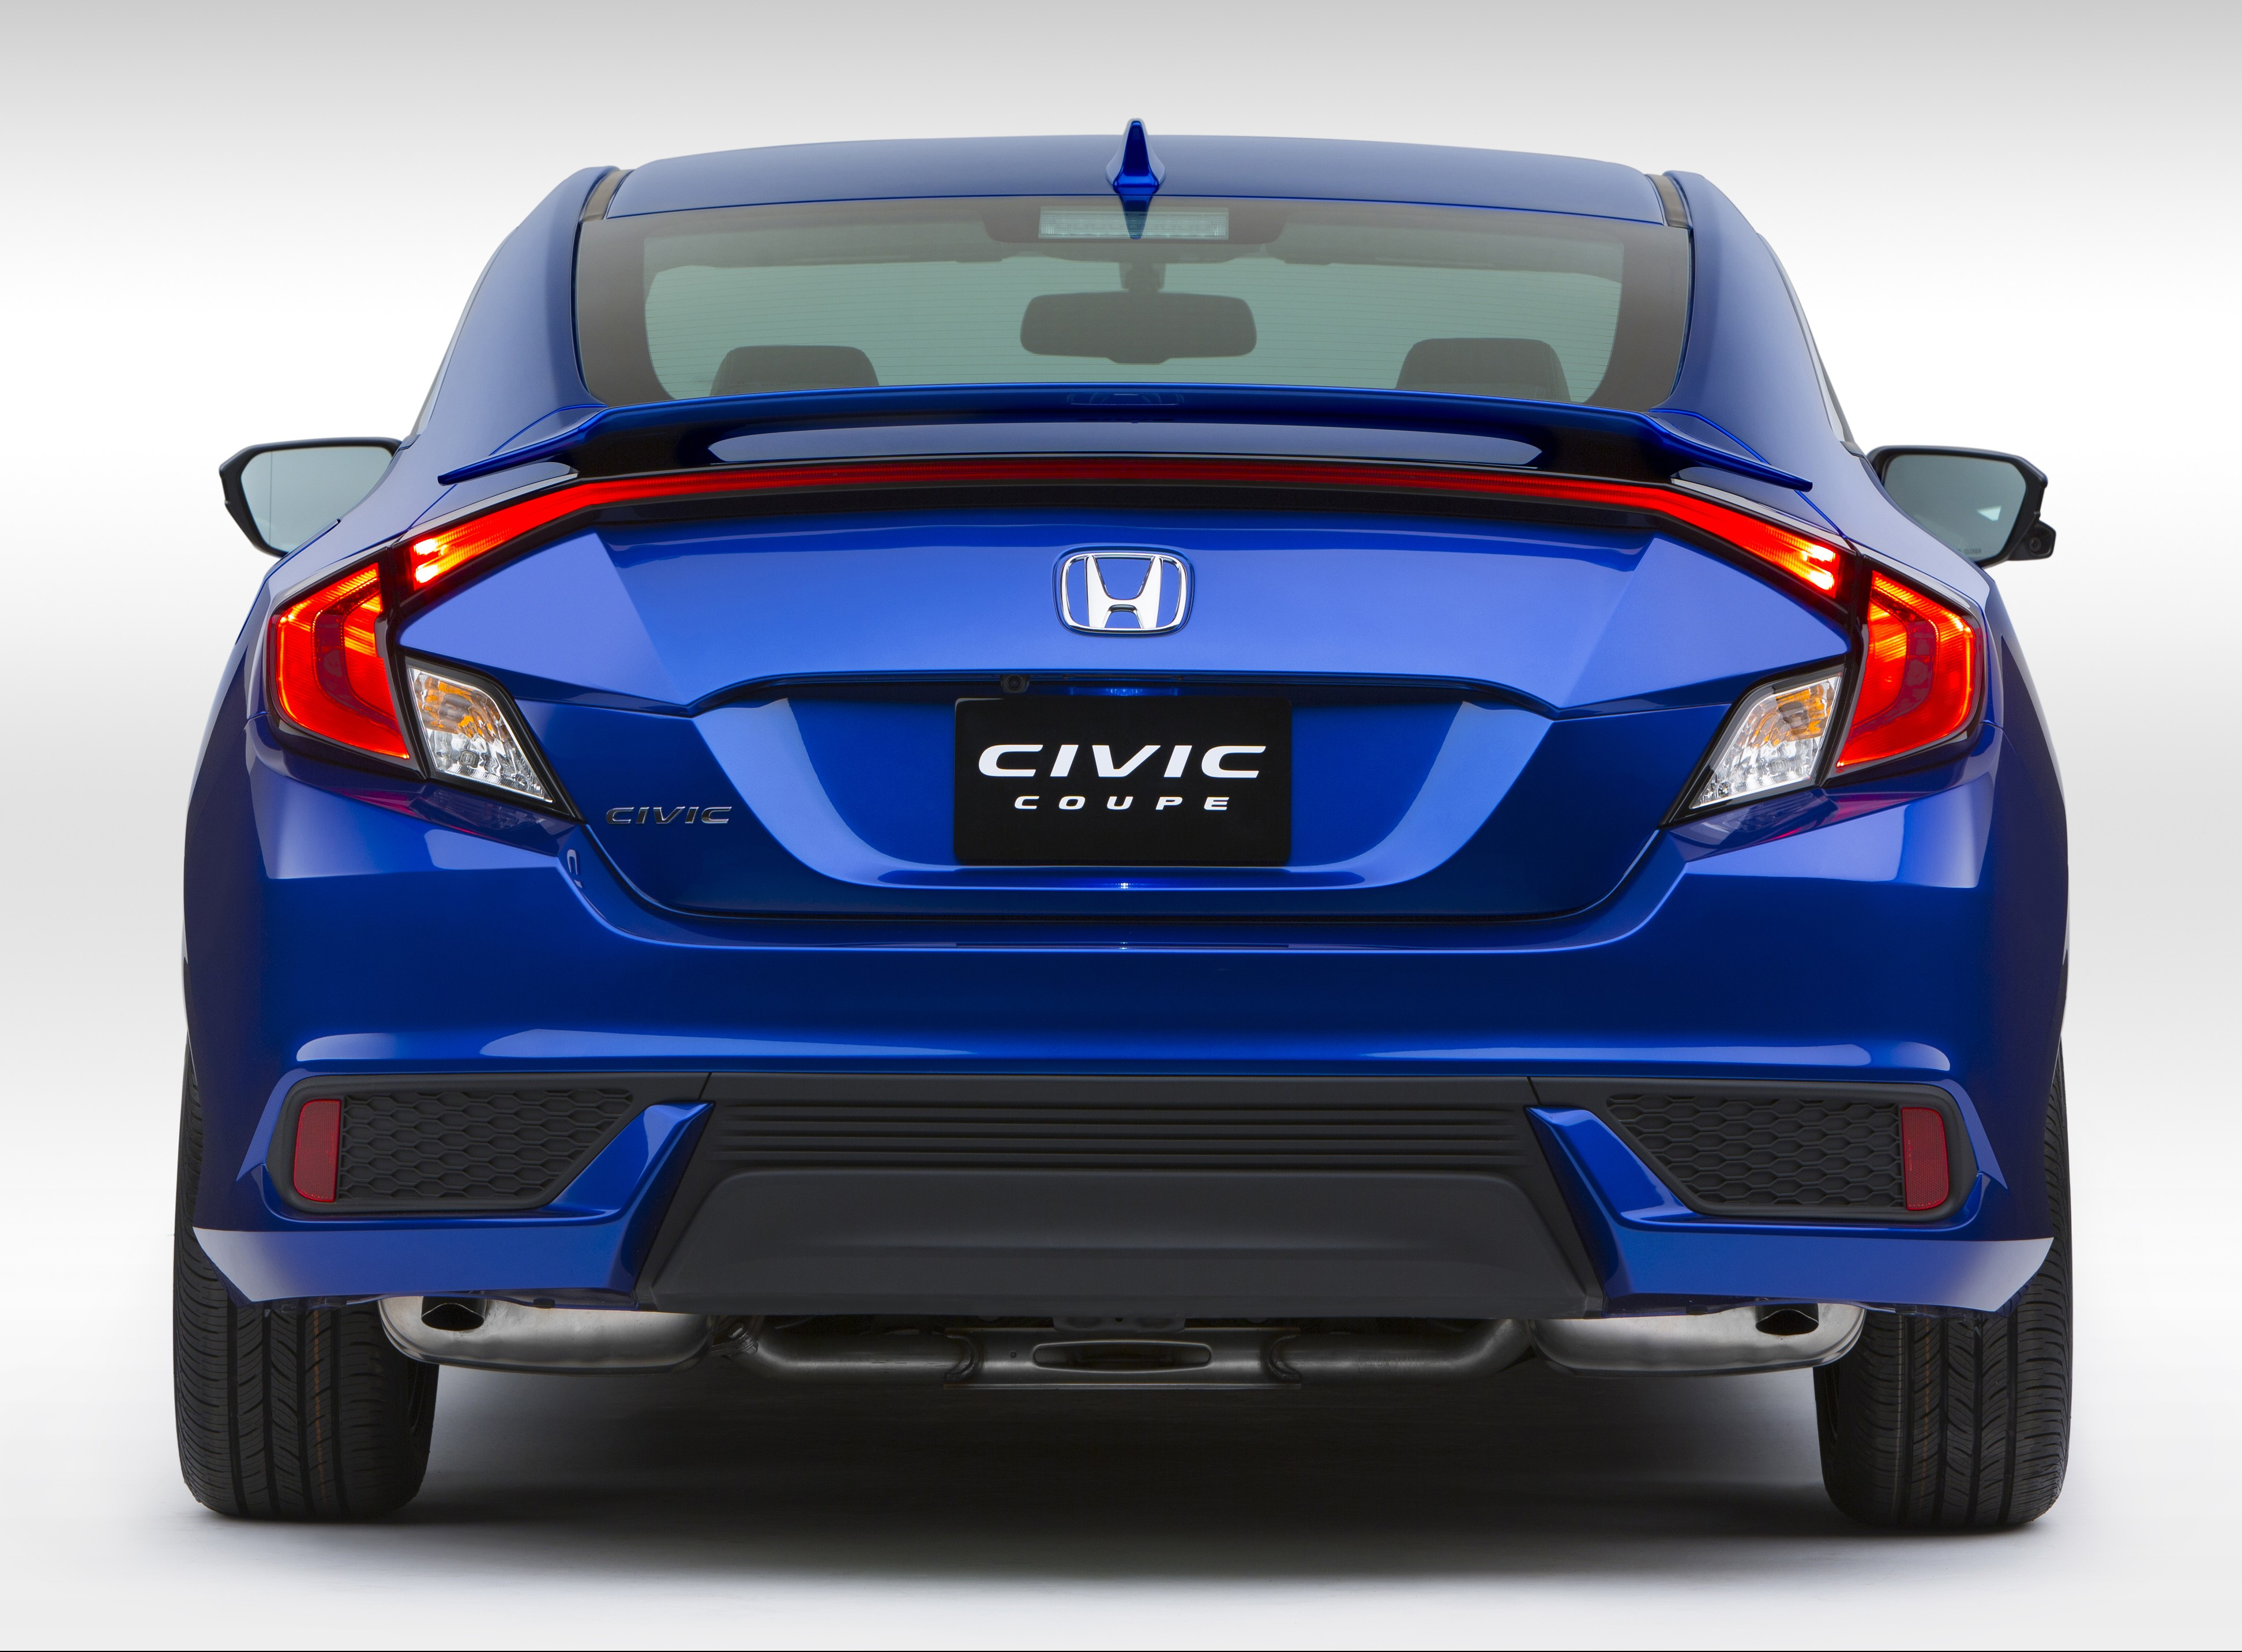 2016 honda civic coupe debuts with 174 hp 1 5l turbo image 408873. Black Bedroom Furniture Sets. Home Design Ideas